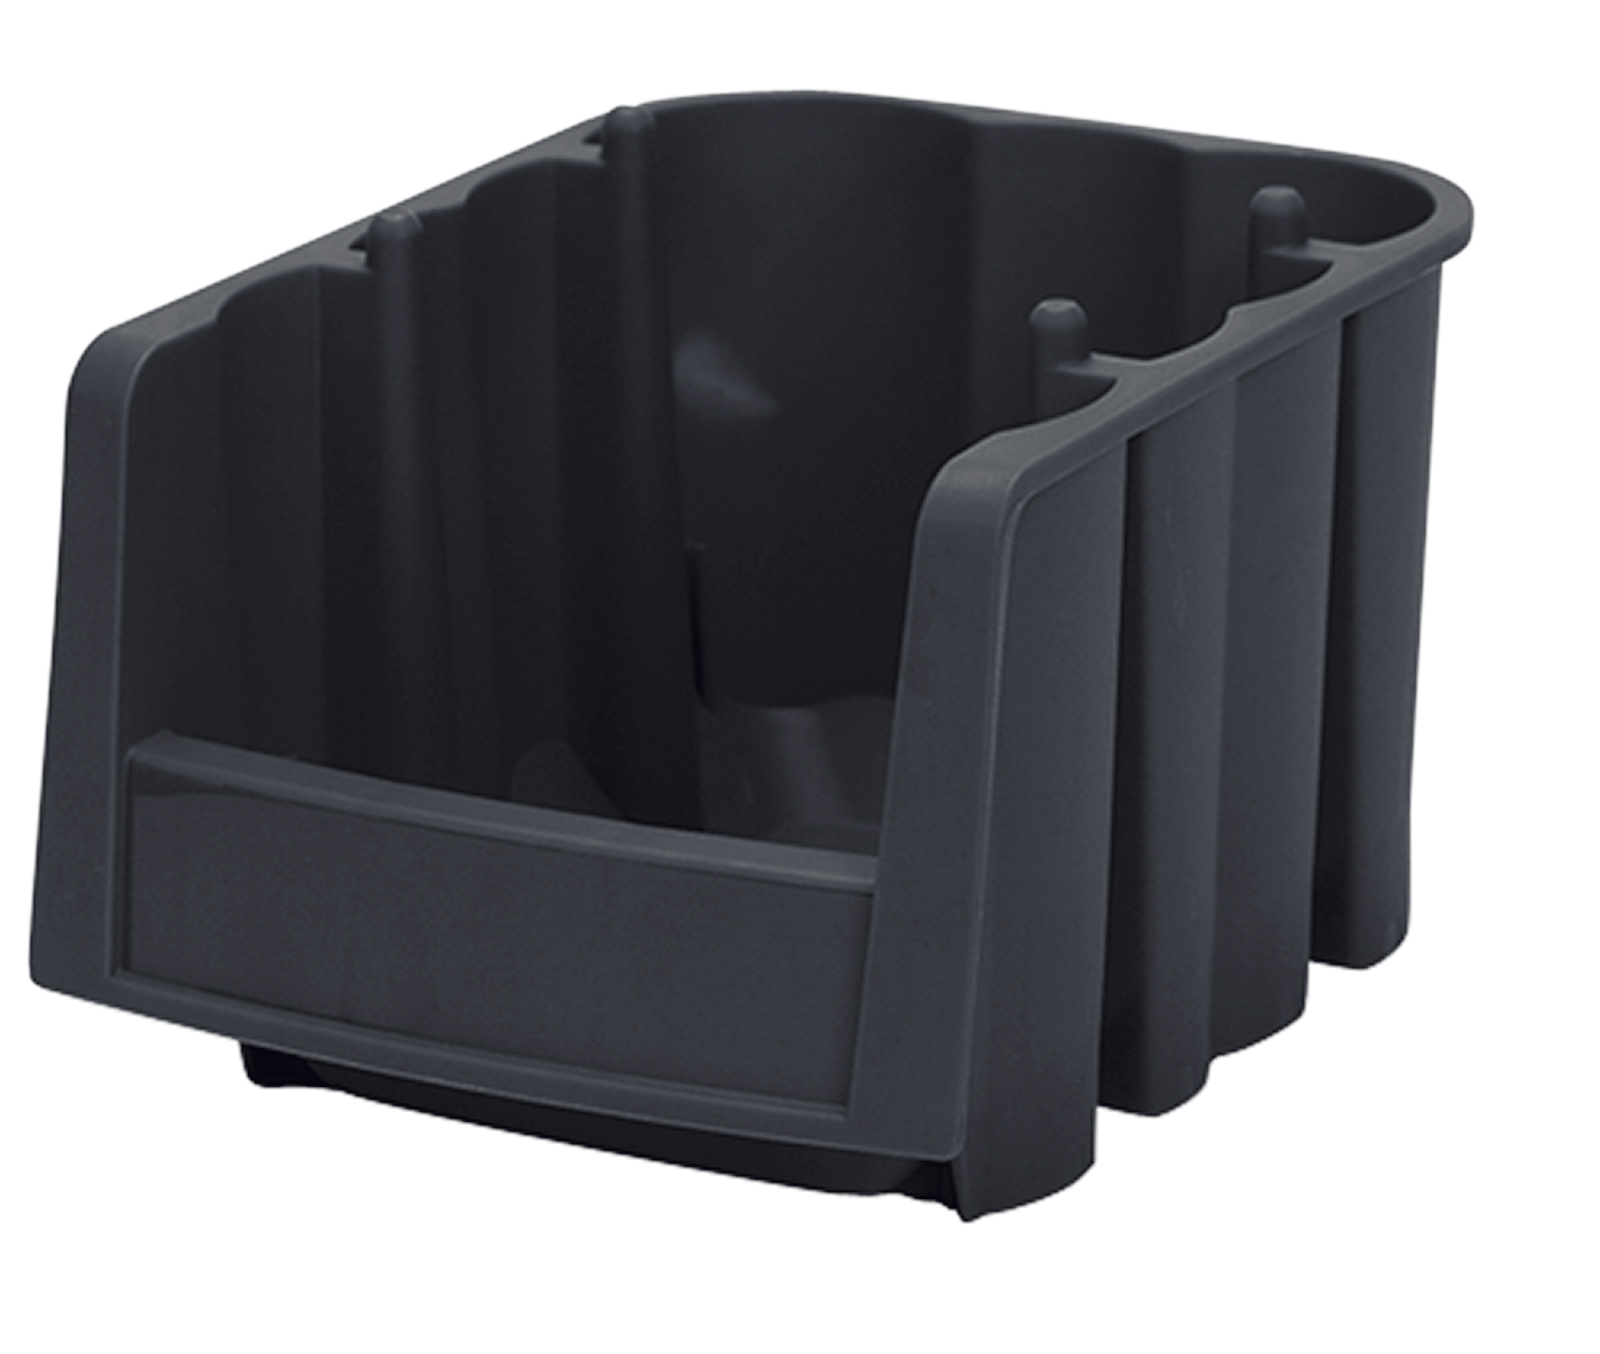 Economy Shelf Bin 8-7/8 x 6-5/8 x 5, Black (30796BLACK).  This item sold in carton quantities of 10.